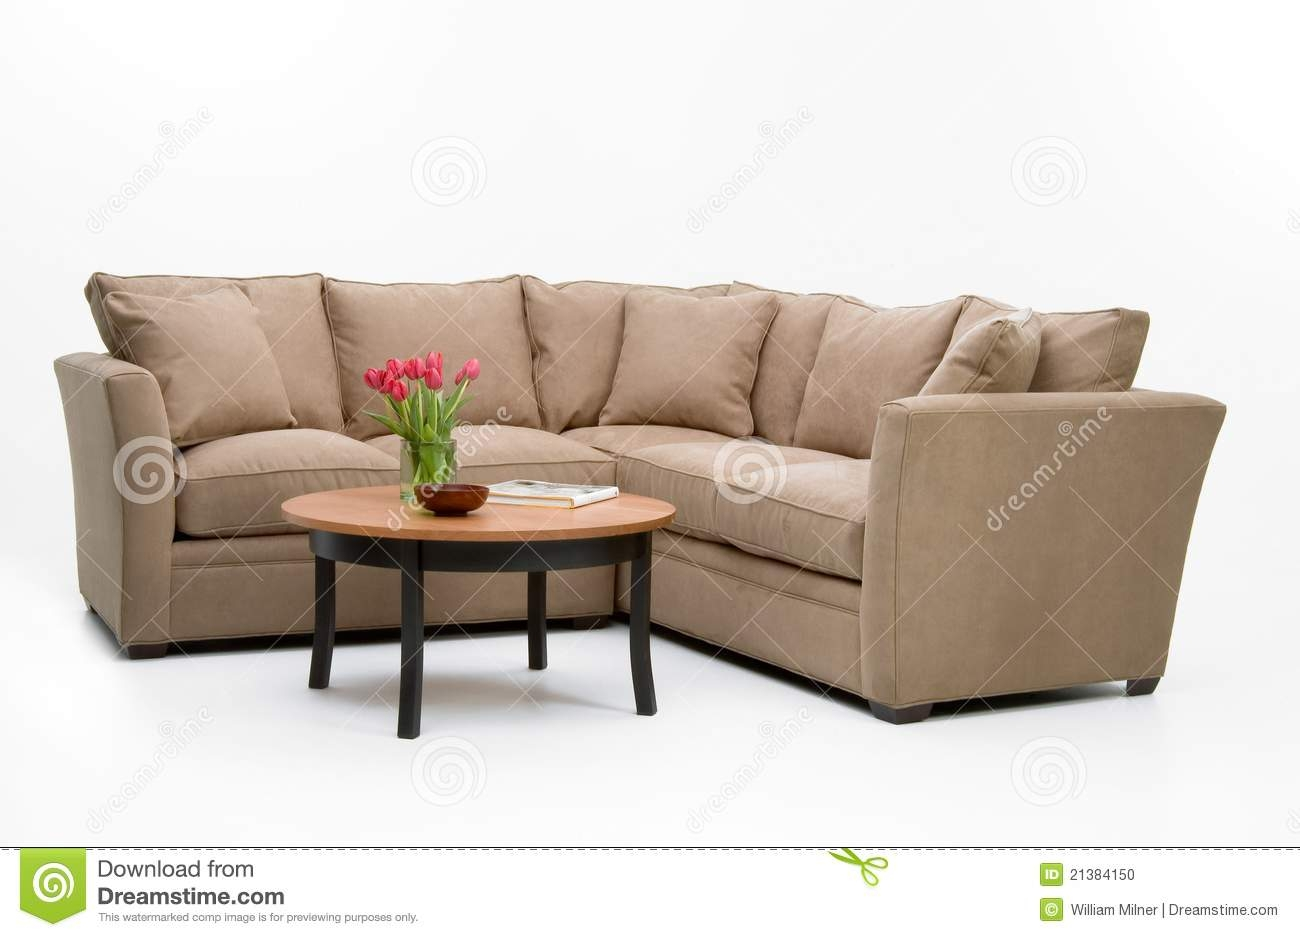 Fabric Sofa Set Table Stock Photo Image 21384150 With Regard To Sofa Table Chairs (Image 6 of 15)